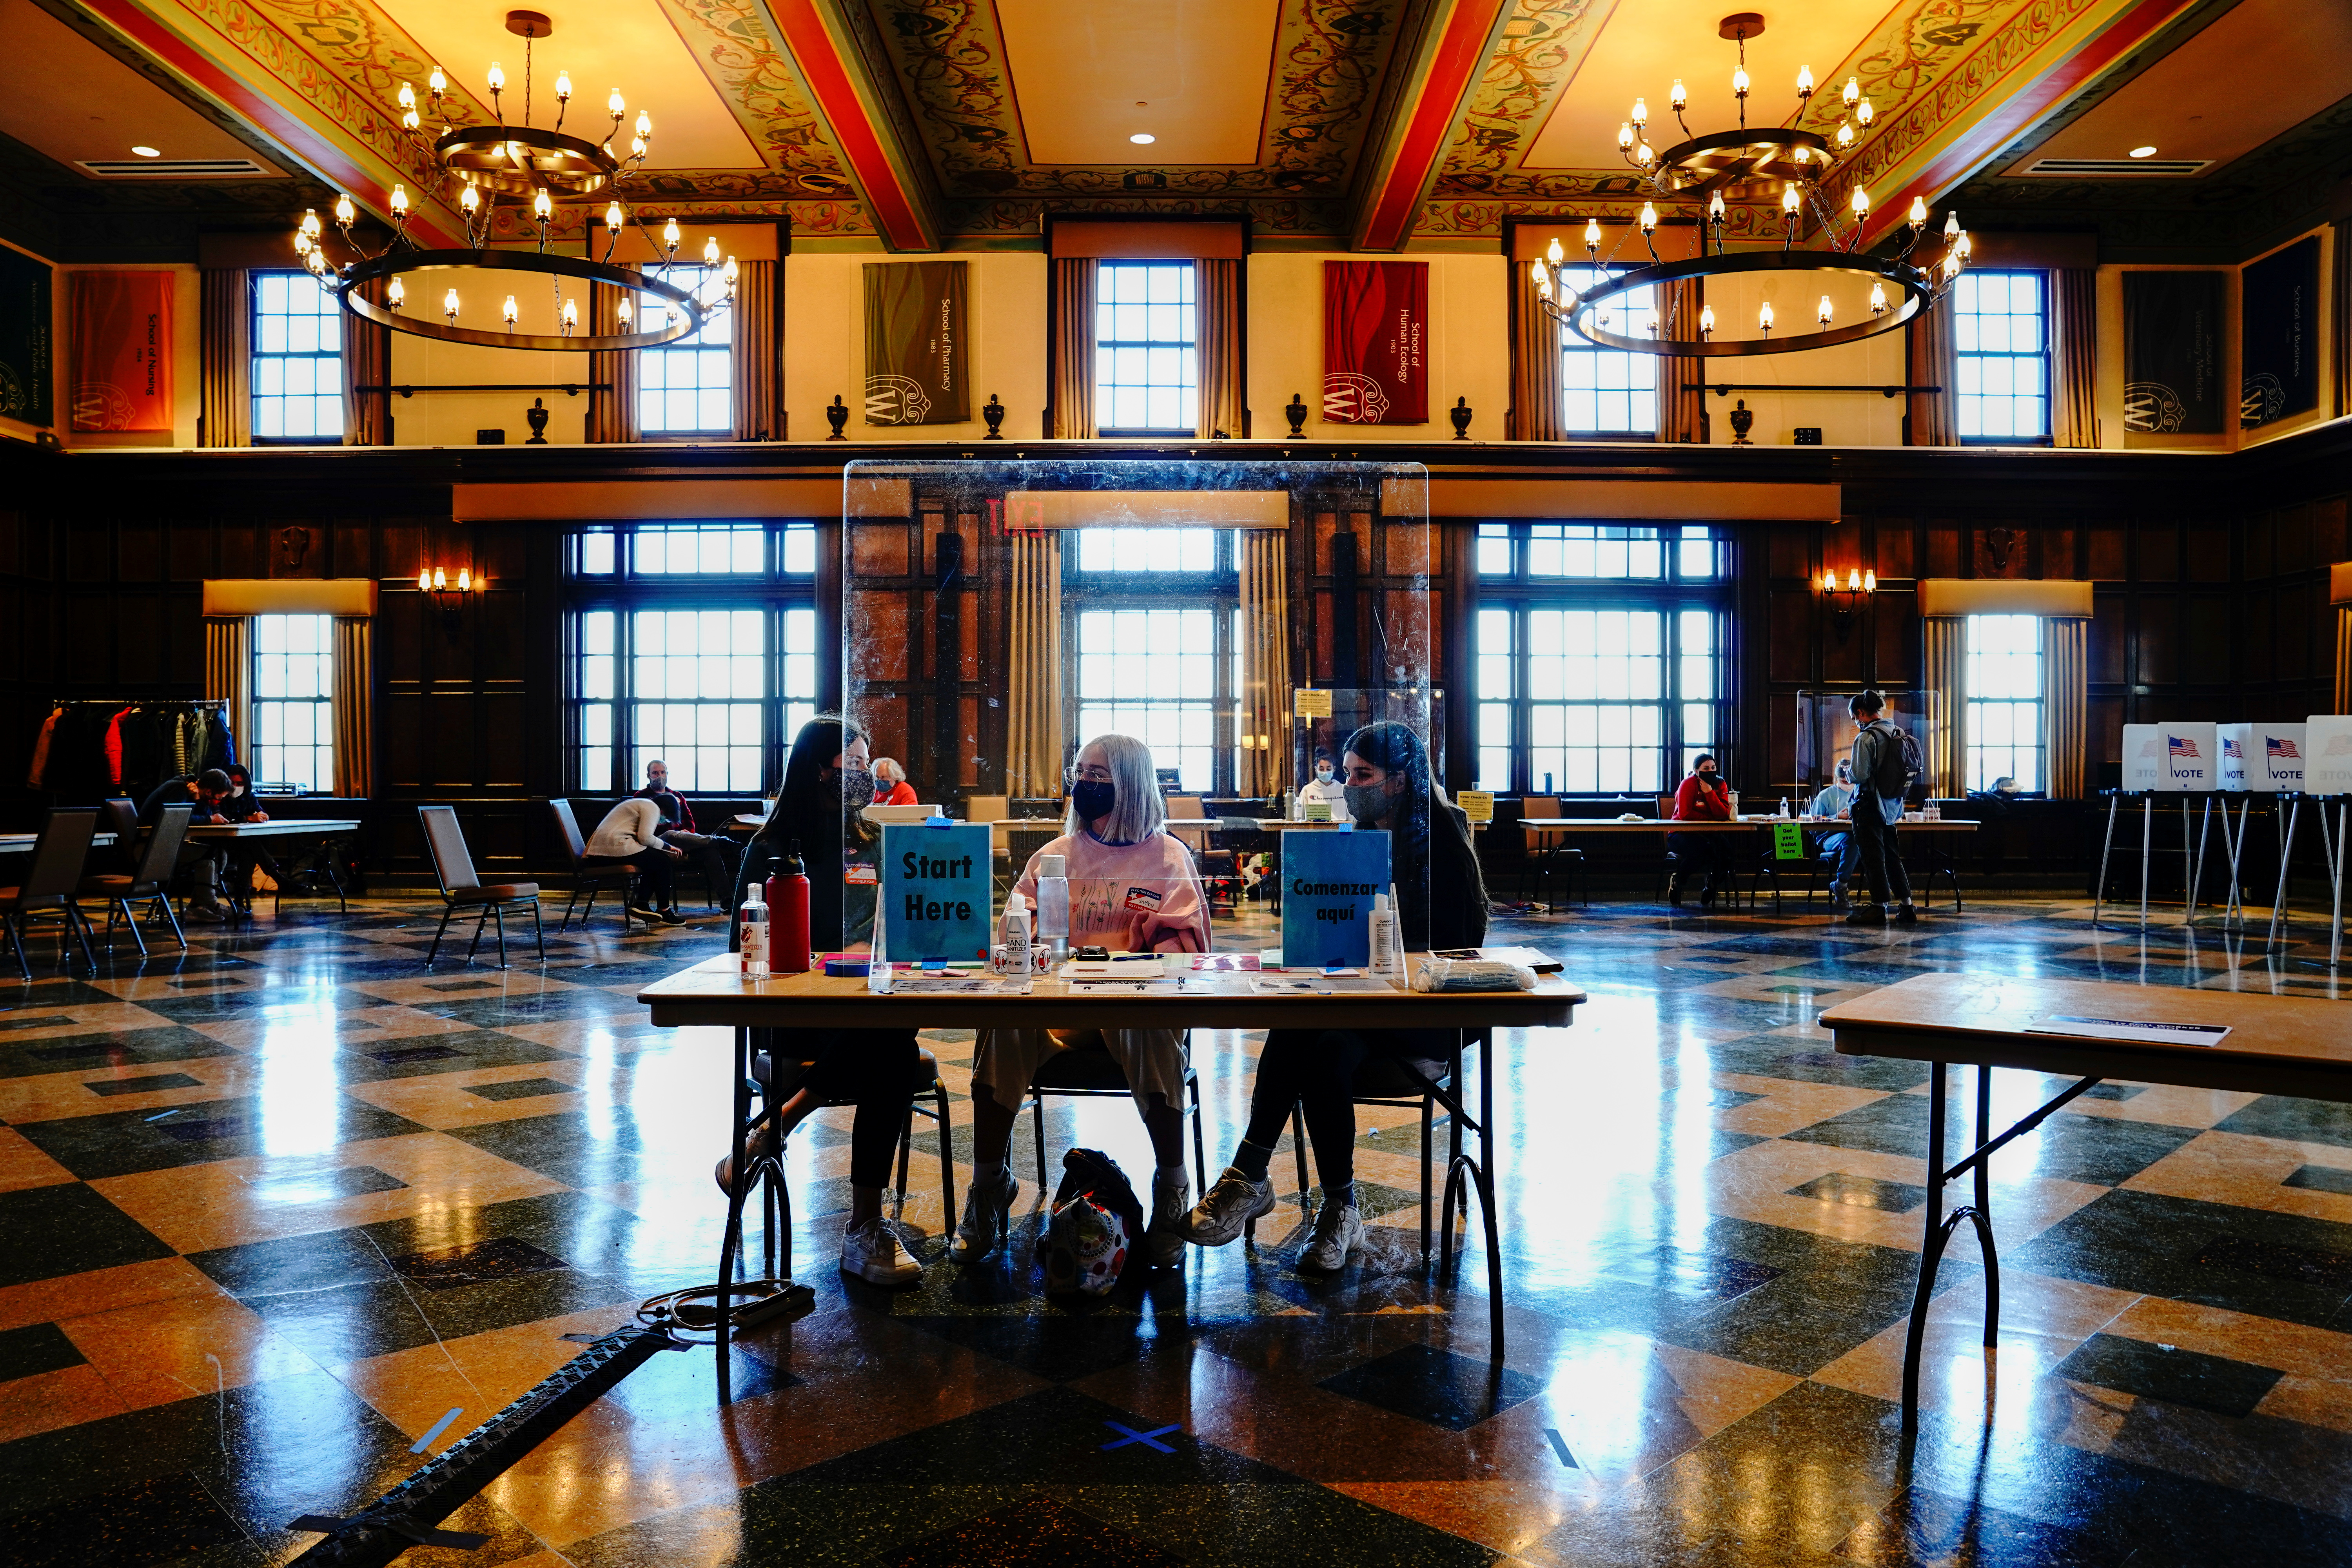 University of Wisconsin-Madison students work as poll workers at a voting site at Tripp Commons inside the Memorial Union building on the UW-Madison campus on Election Day in Madison, Dane County, Wisconsin, U.S. November 3, 2020. REUTERS/Bing Guan